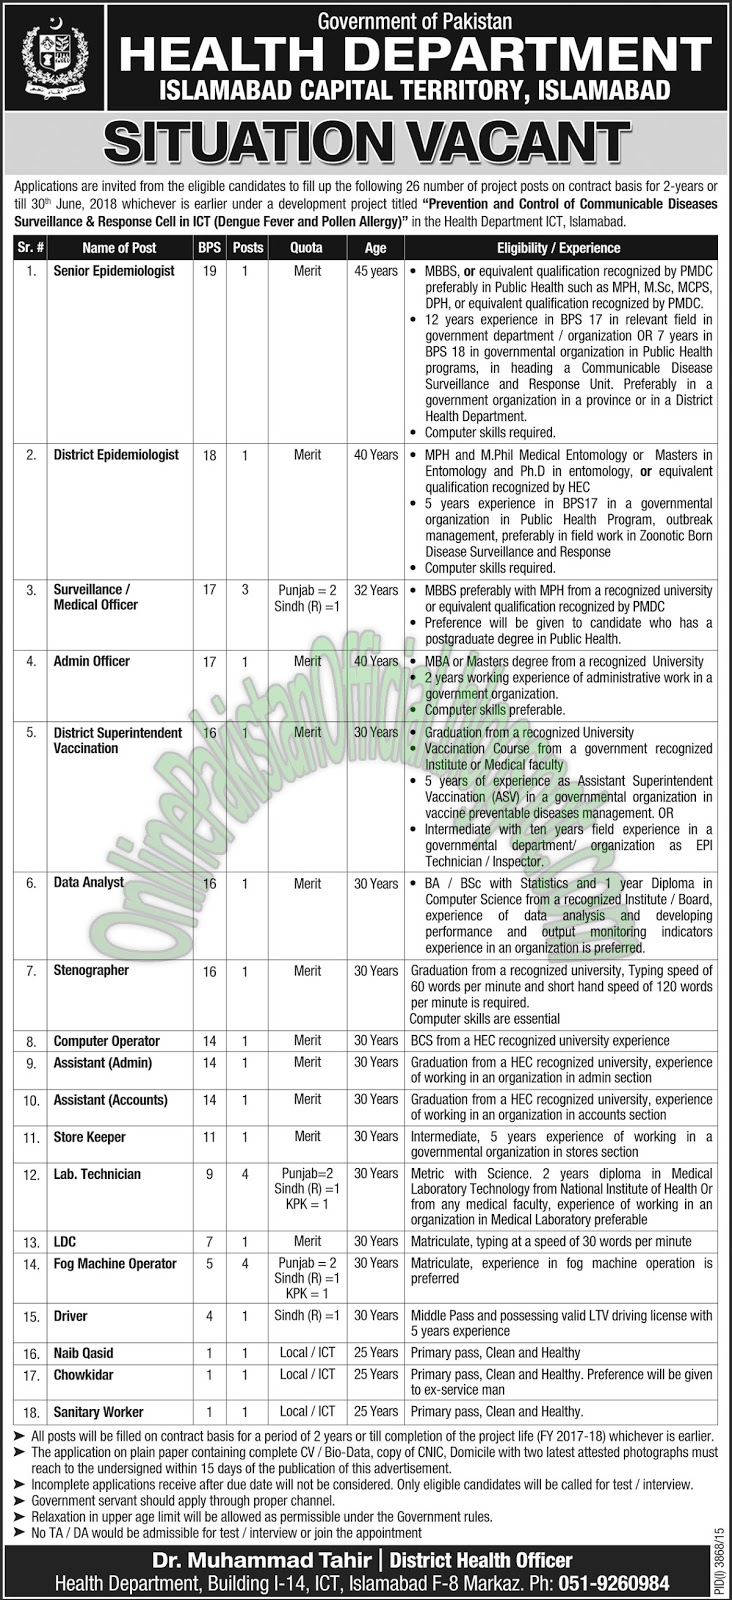 Islamabad Health Department jobs in pakistan latest